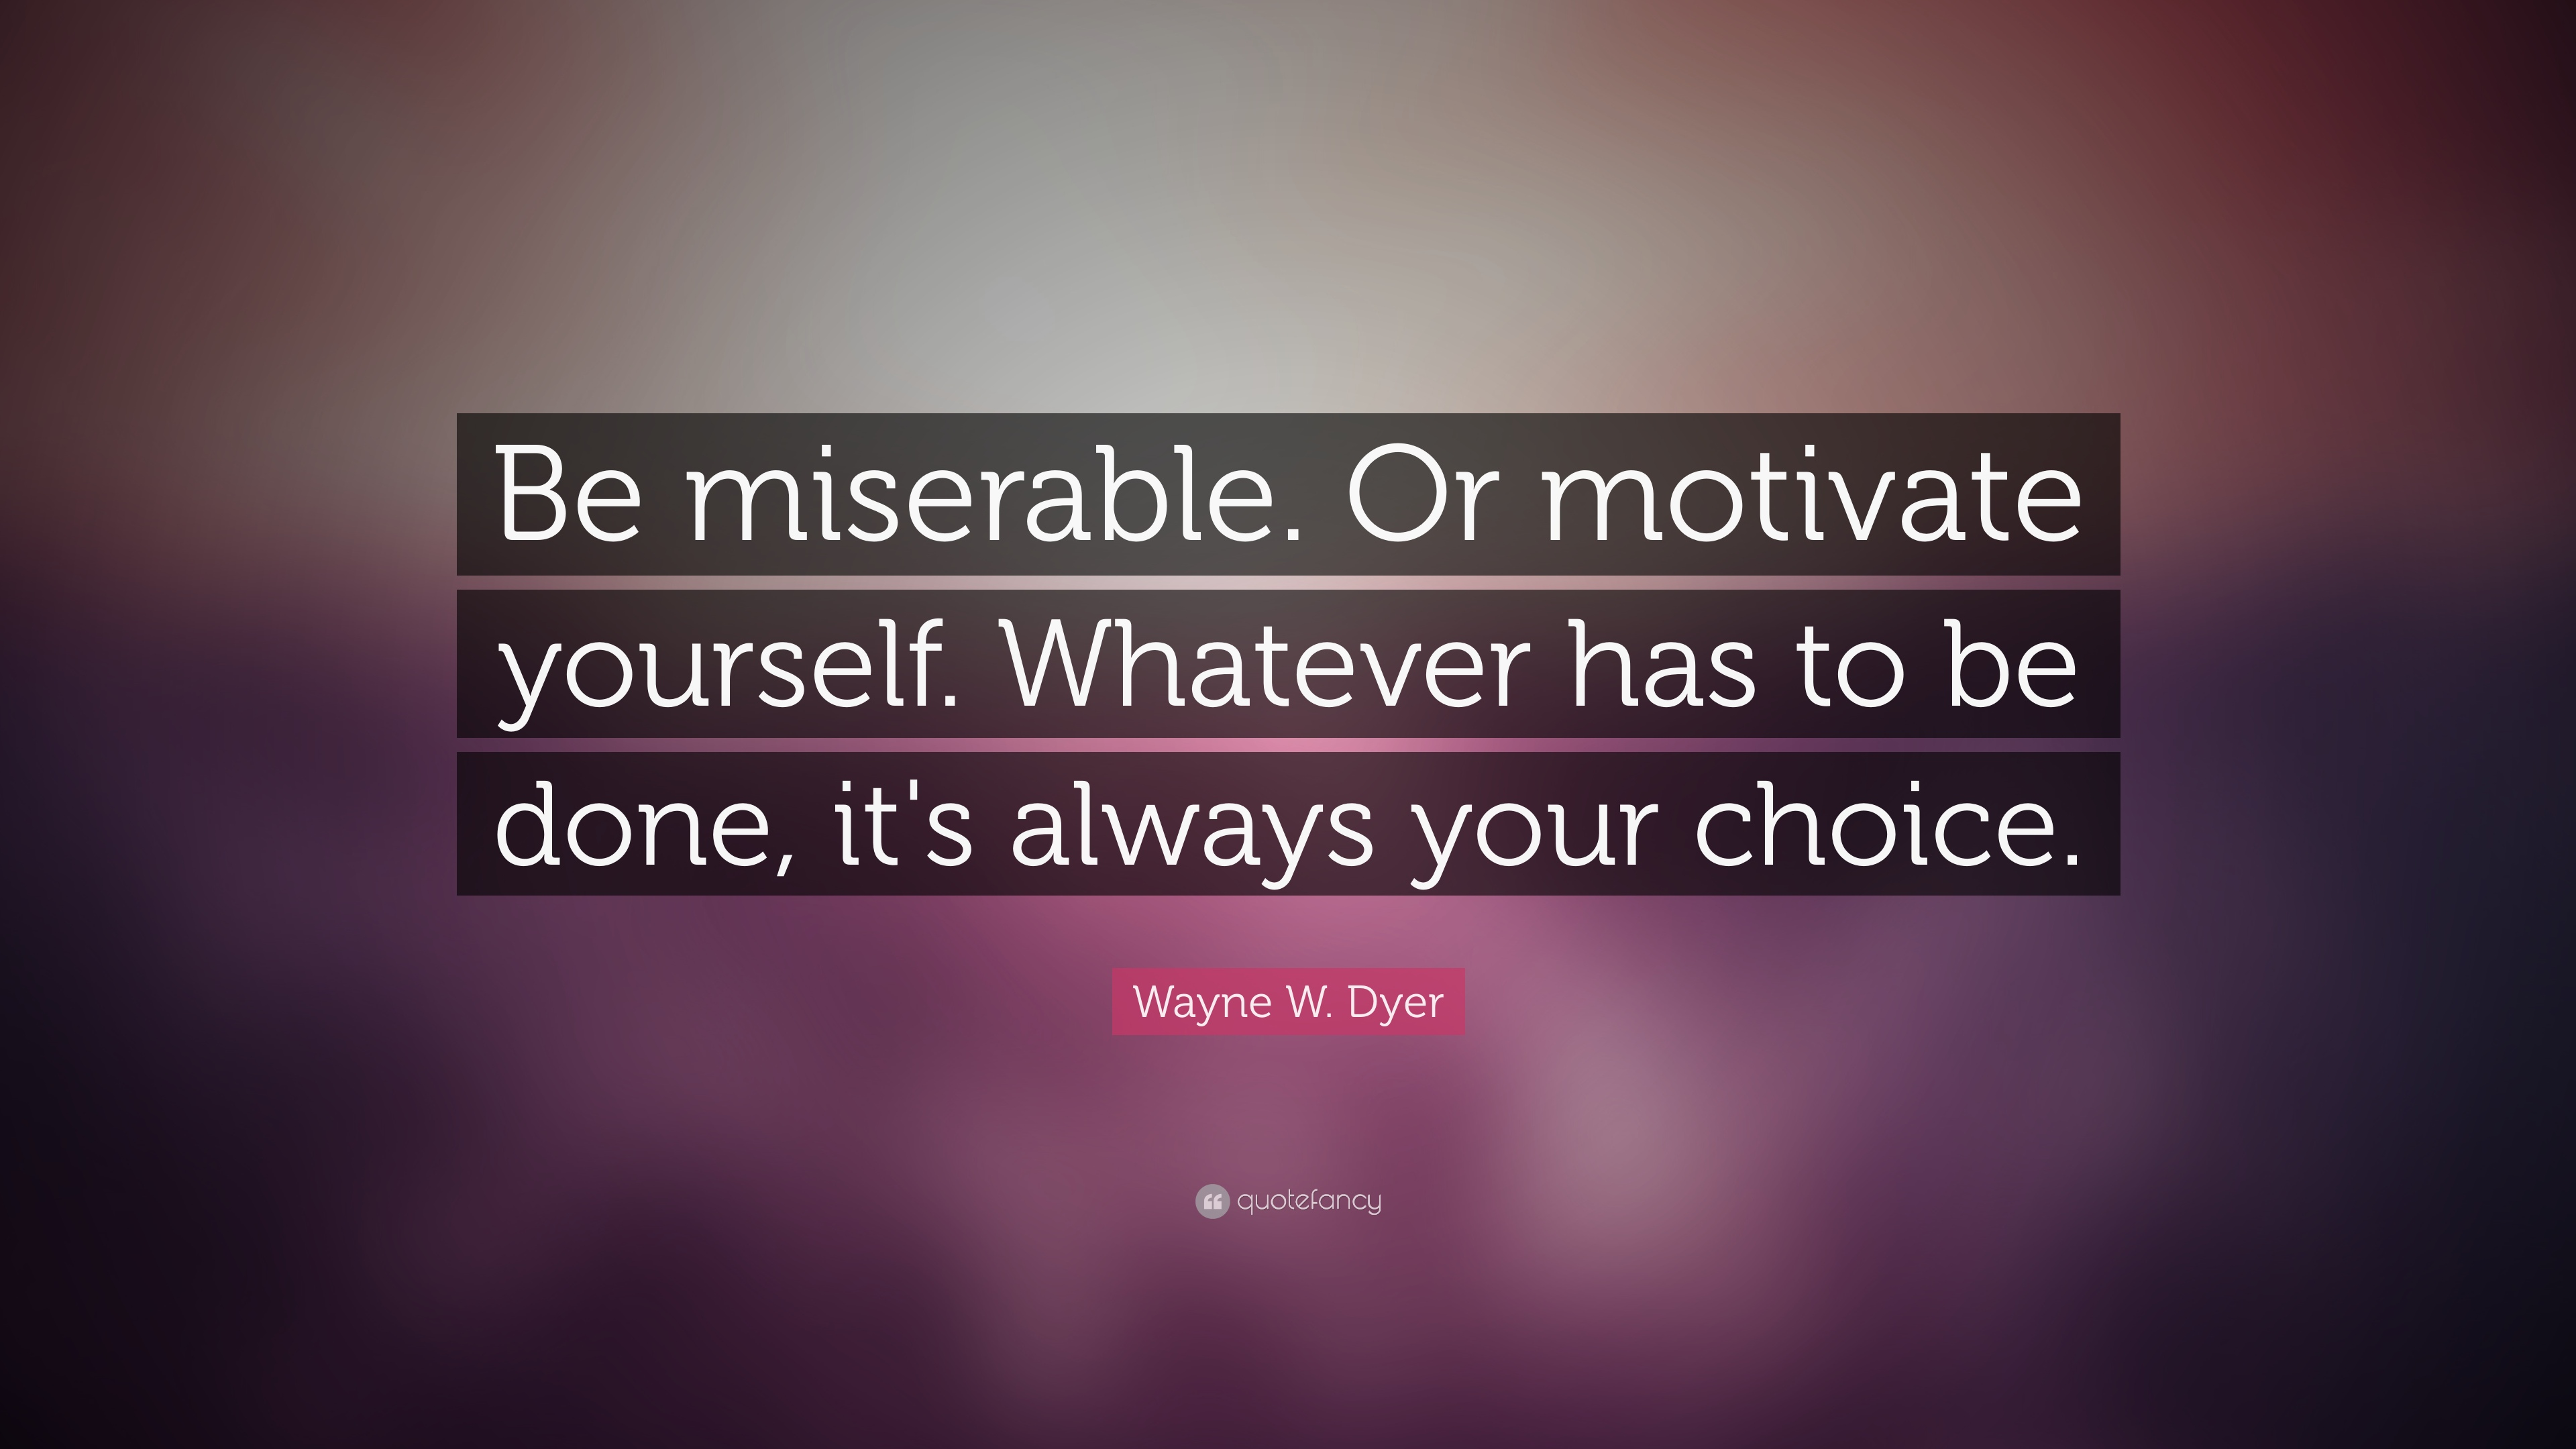 Wayne W Dyer Quote Be Miserable Or Motivate Yourself Whatever